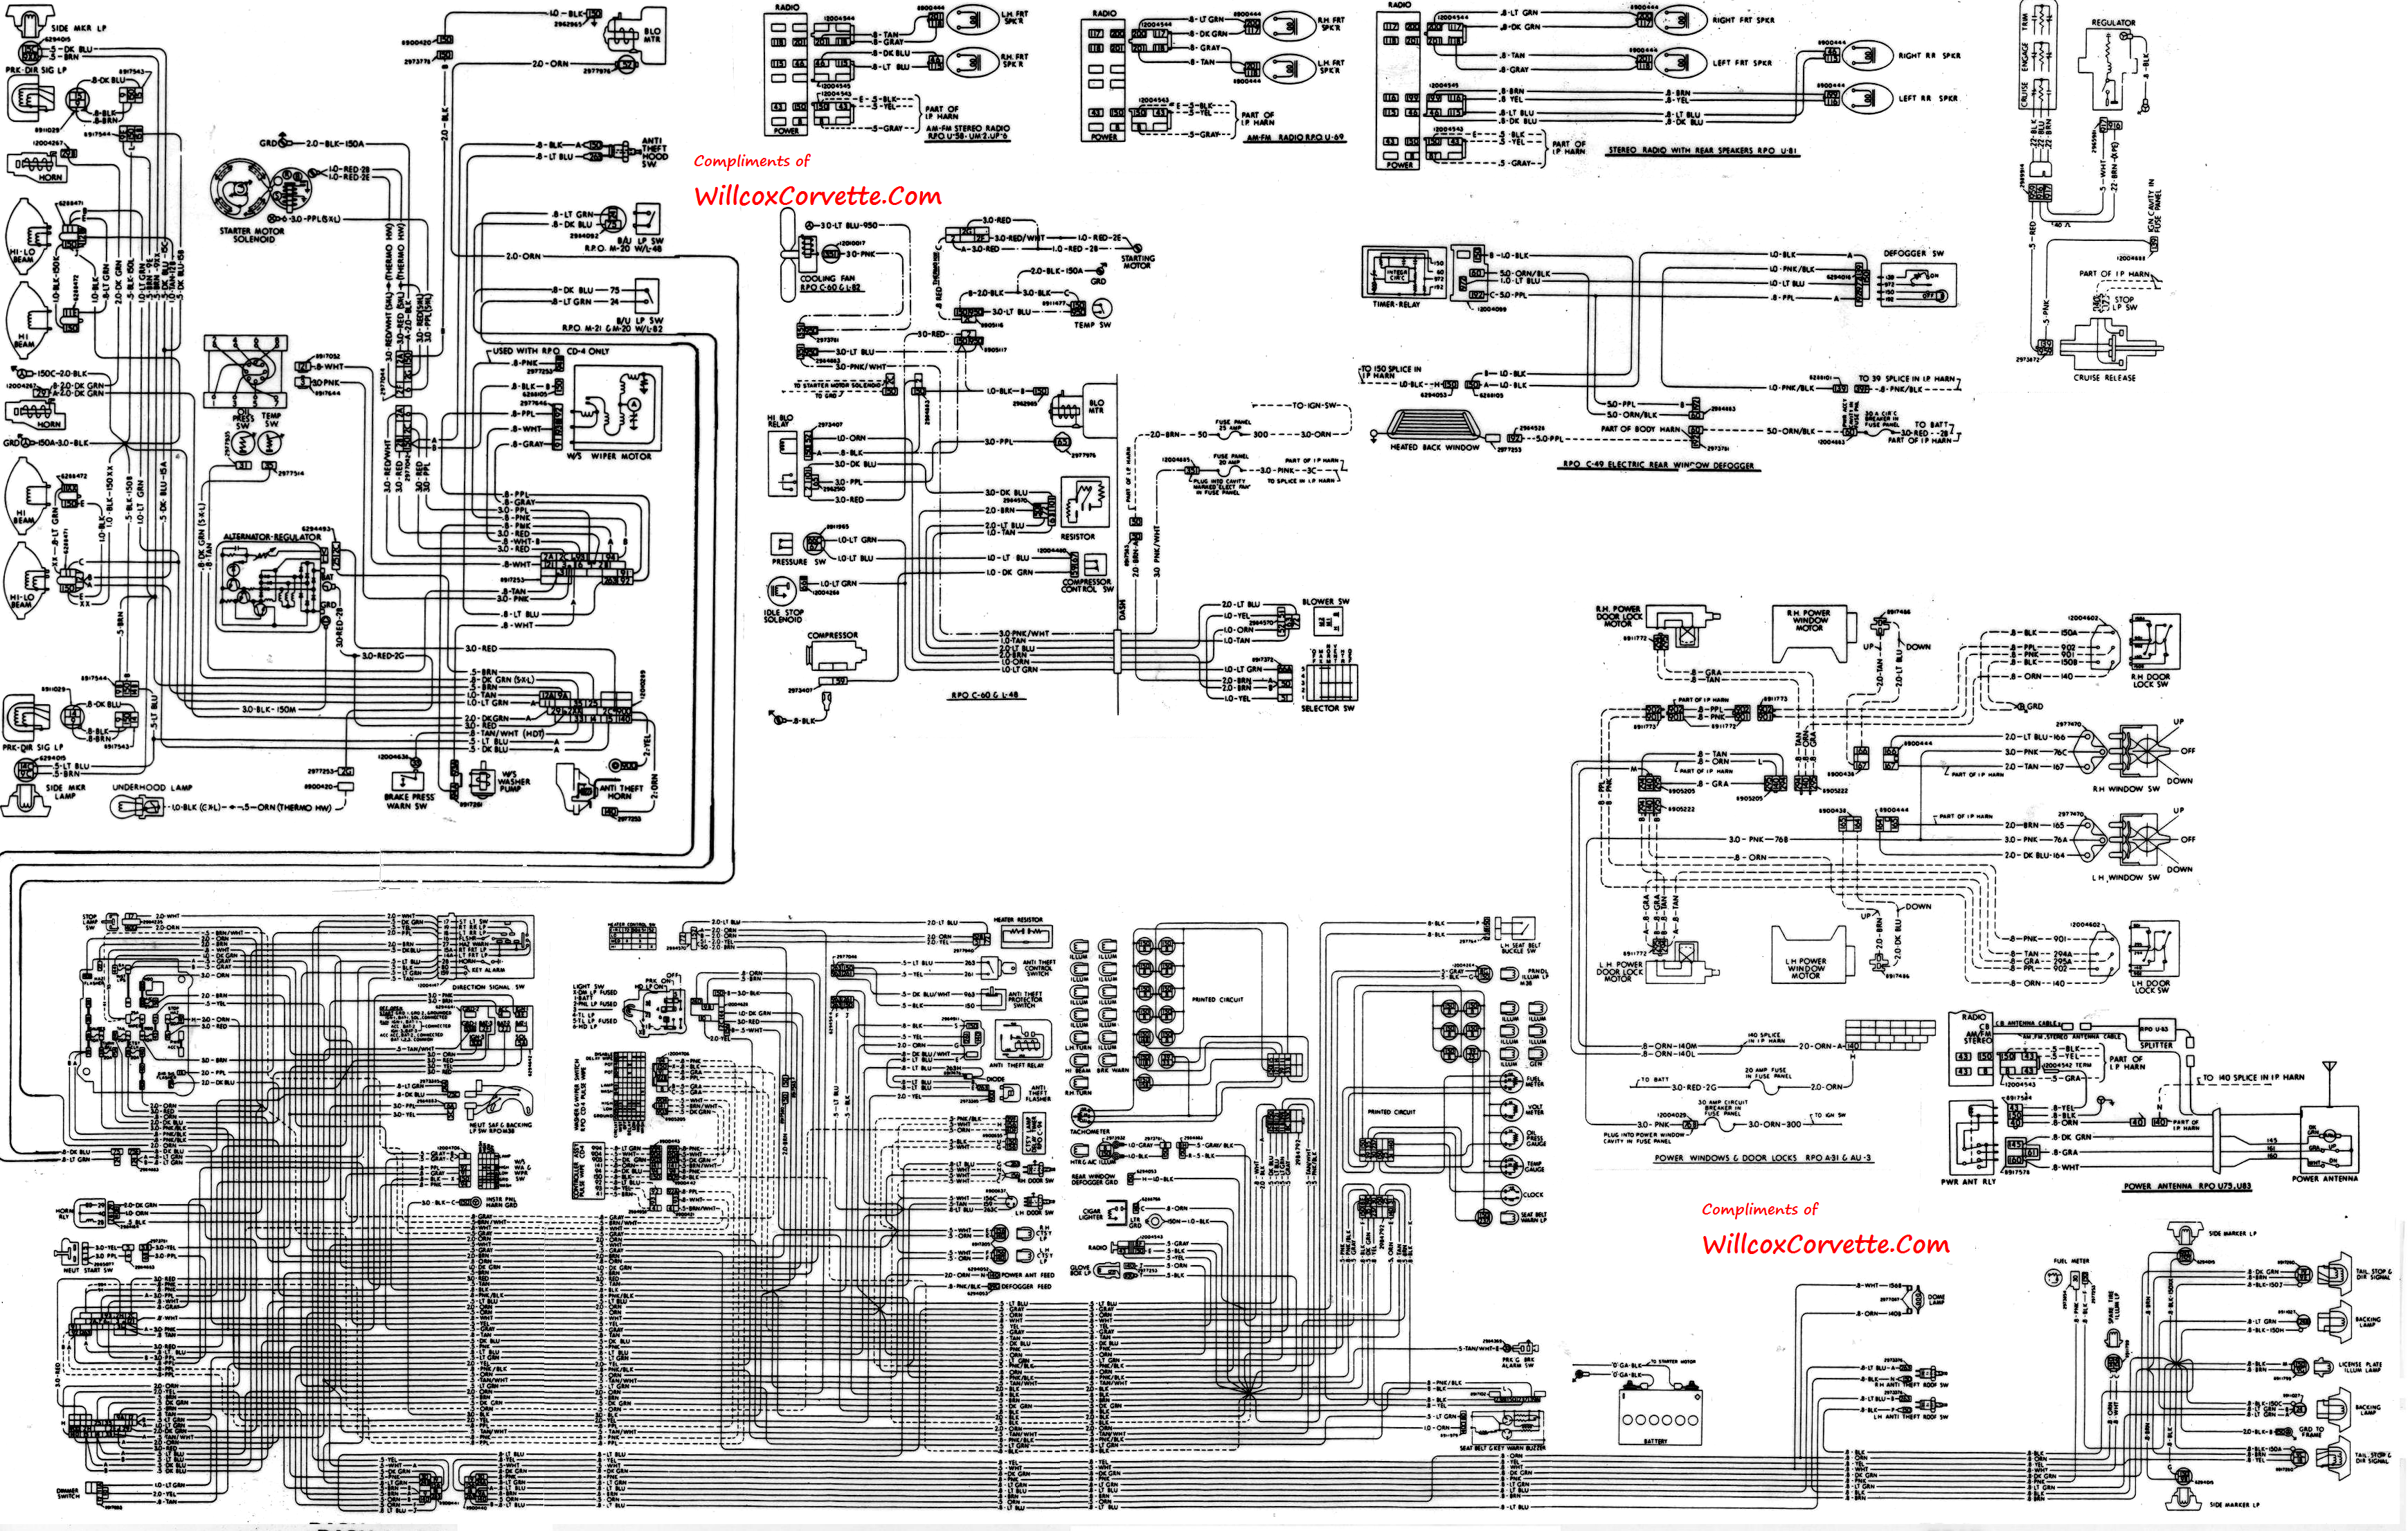 1979 wire diagram 1979 corvette wiring diagram aux fan wiring diagram 1979 corvette 1979 Corvette Fuse Box Diagram at crackthecode.co